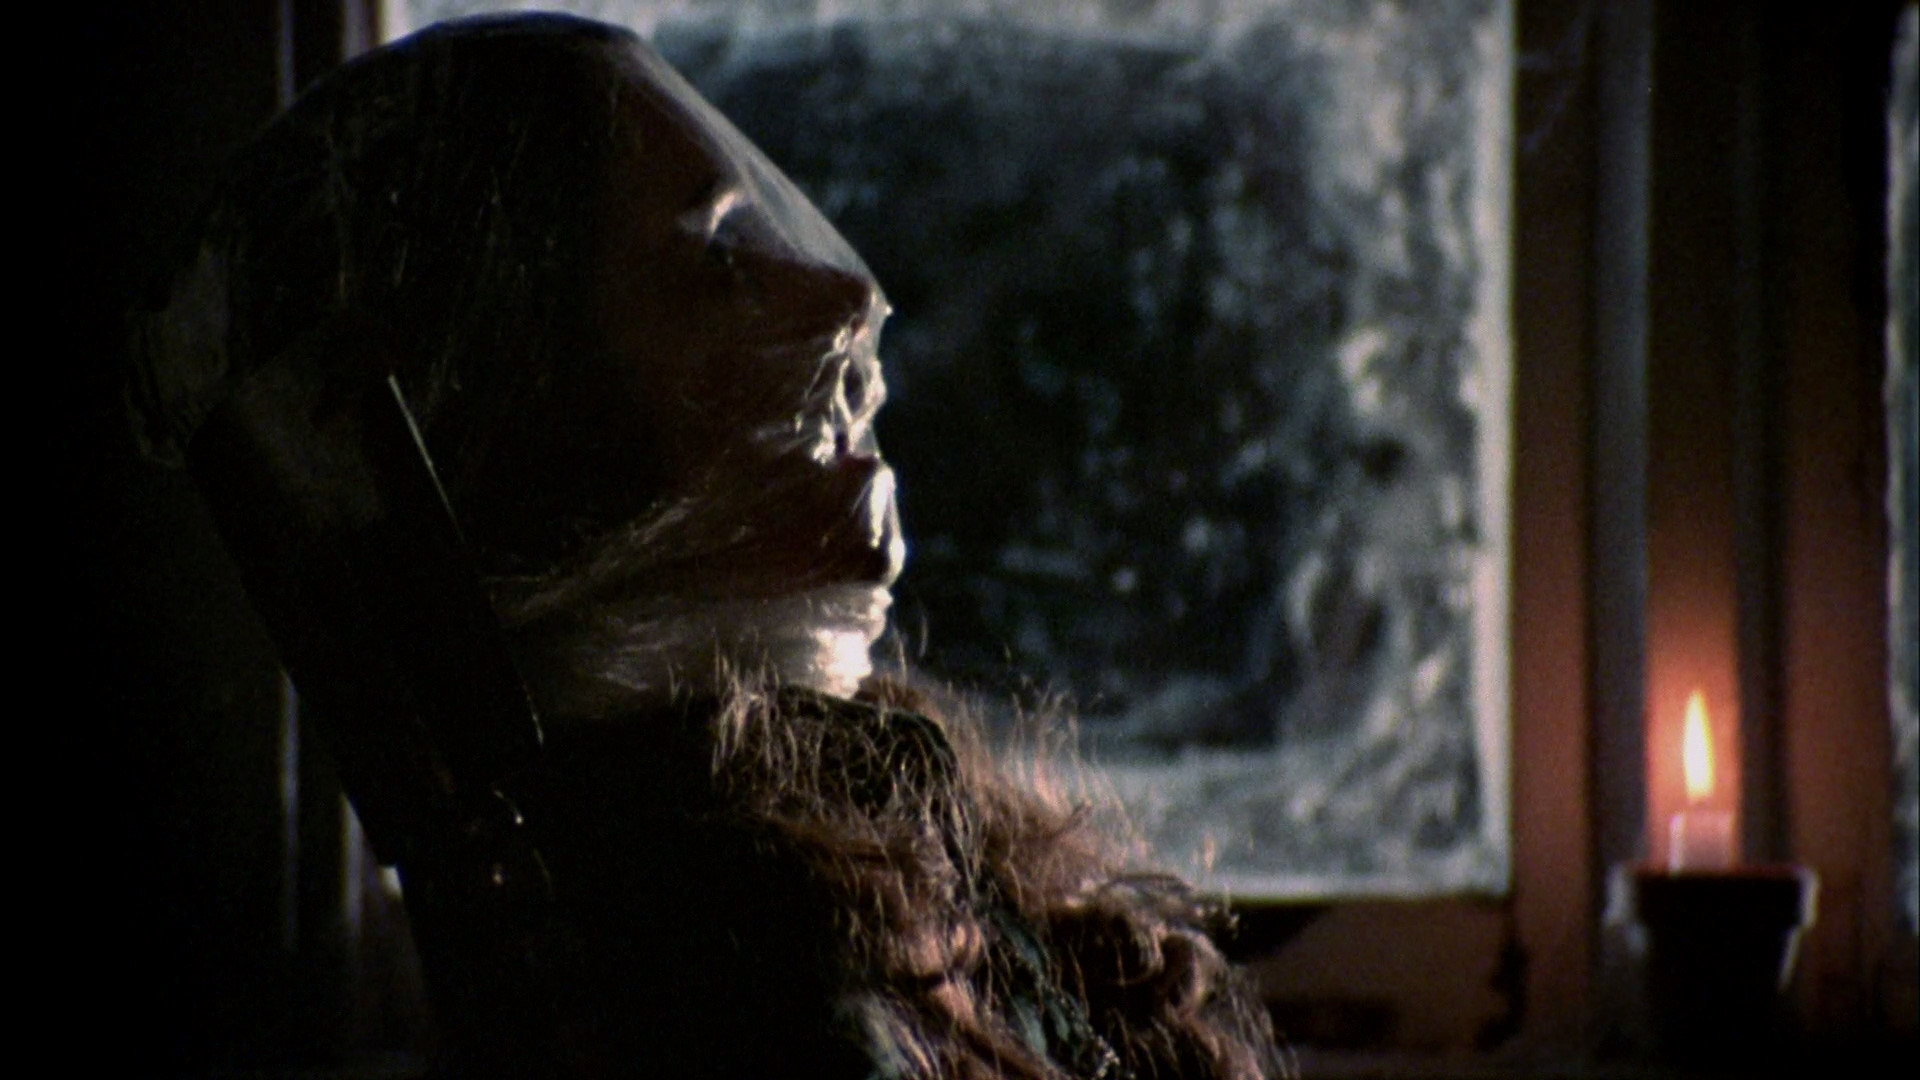 blu ray review black christmas finally arrives on blu ray in the uk bloody disgusting - Black Christmas